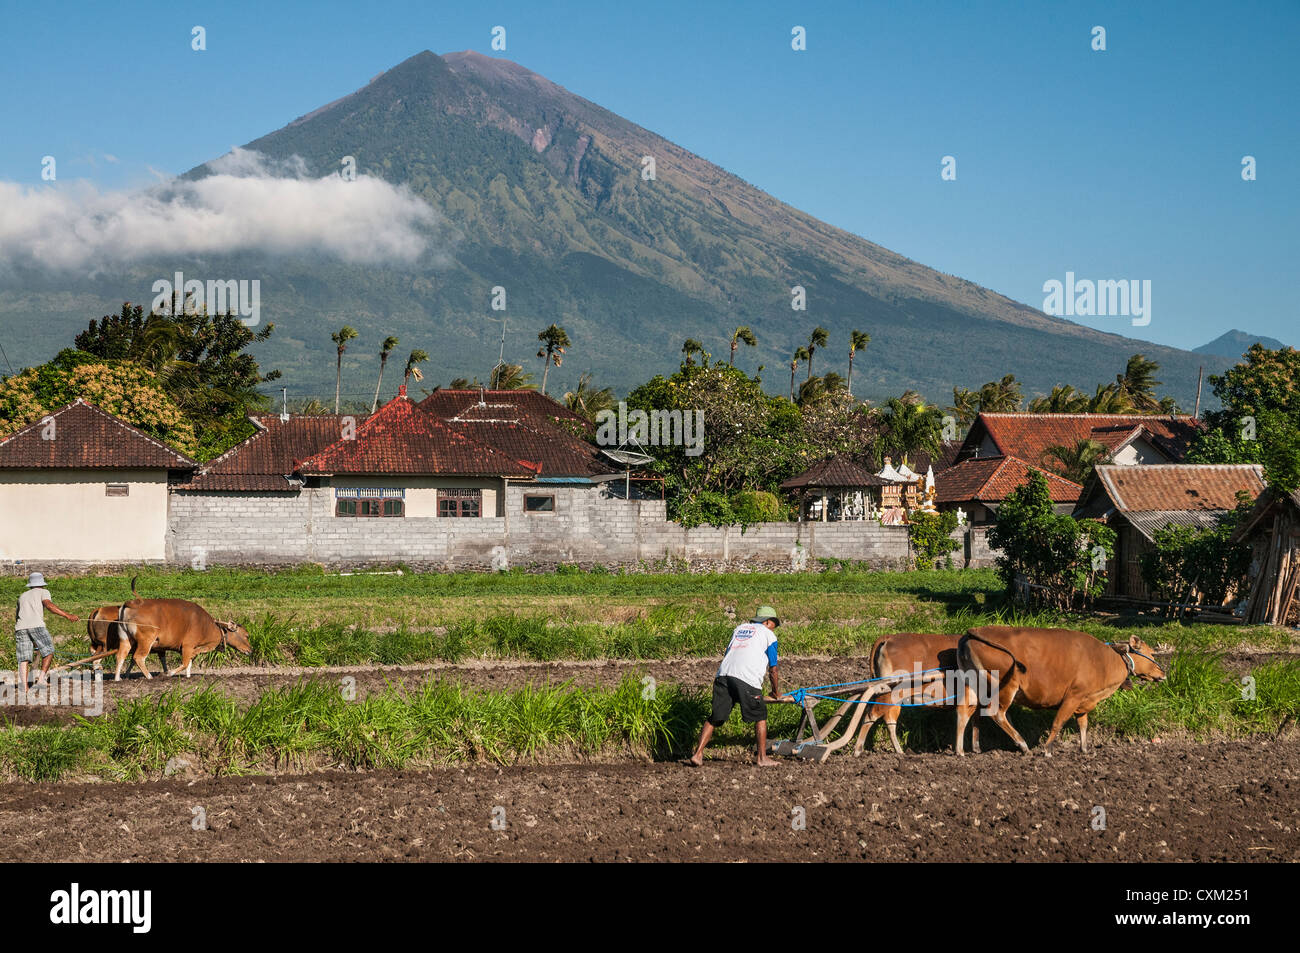 Ploughing fields near Amed with Gunung Agung volcano in the background, Eastern Bali, Indonesia. - Stock Image